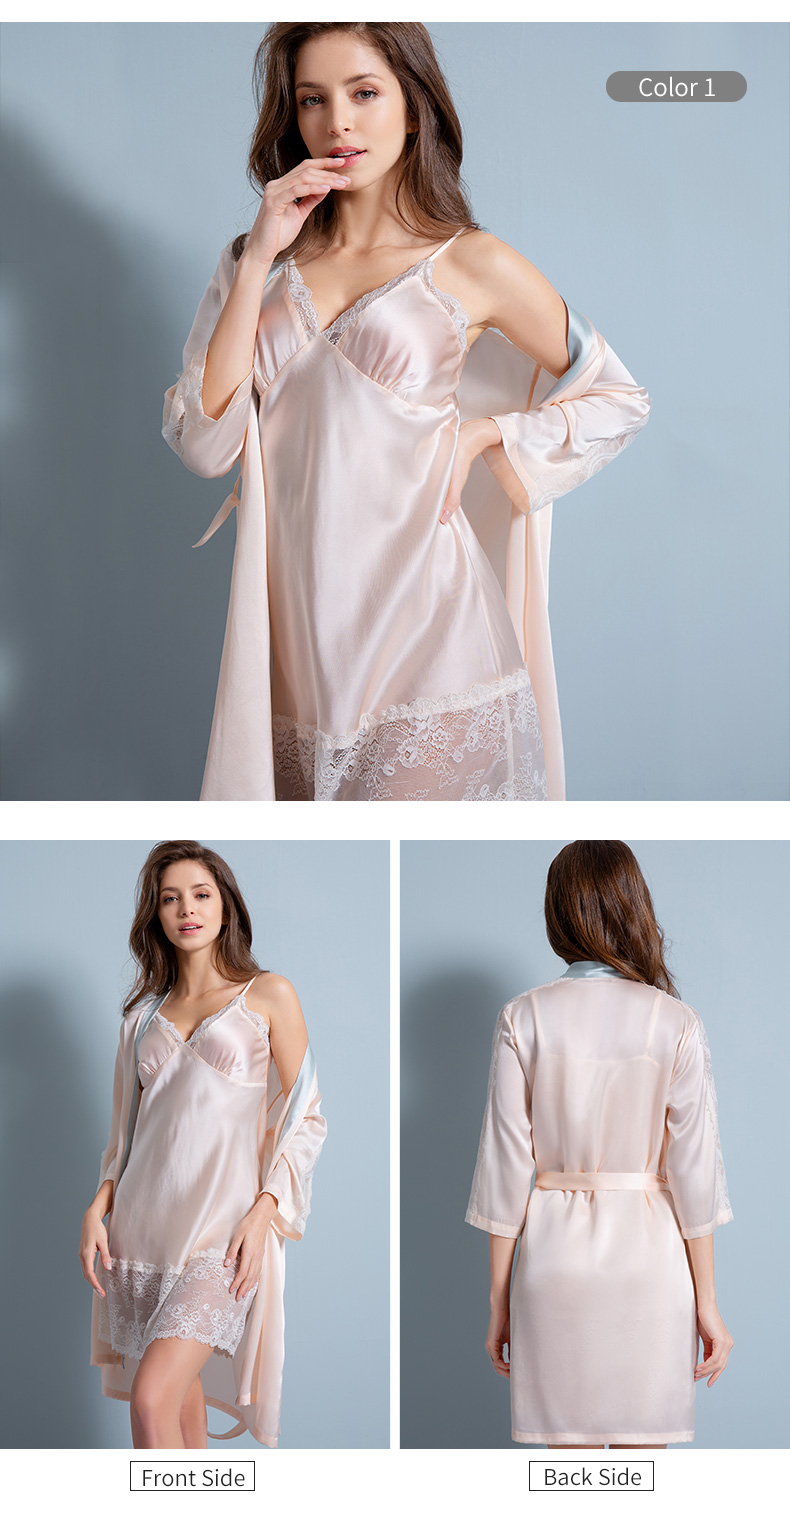 100% Real Silk Nightgown Set for Women 2020 Bedgown Nightshirt Lady Pajams High Quality 16m/m Pure Silk Robe Set Girls Sleepwear